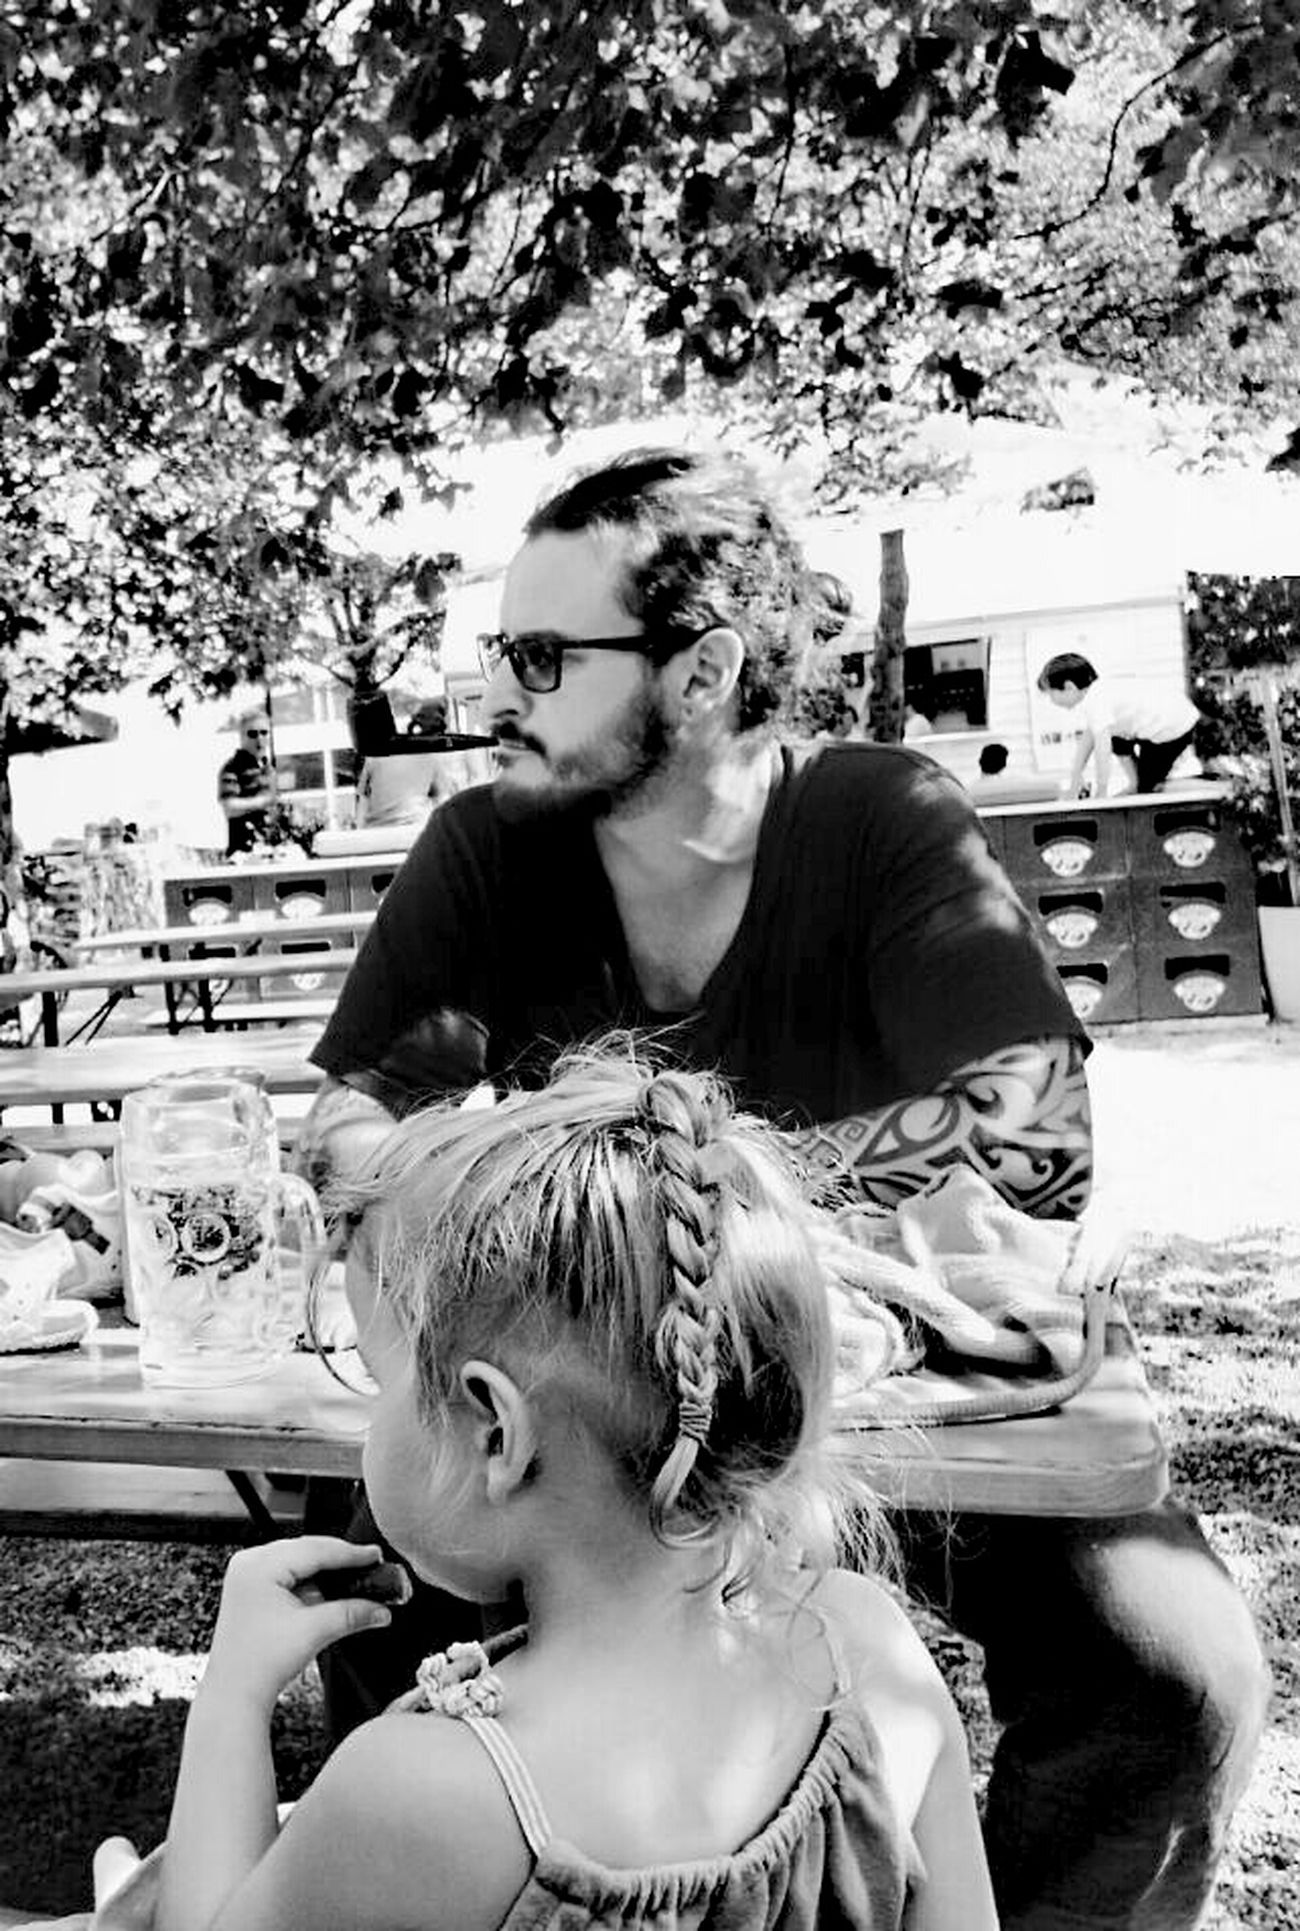 Child Girls Childhood Two People Tattoo Check This Out Day Real People Sitting Boys Outdoors Togetherness Children Only Females Happiness Human Body Part Young Adult Young Women Black And White Father And Daughter Vater Und Tochter Schwarz Und Weiß Eyeemphotography EyeEm Gallery Germany